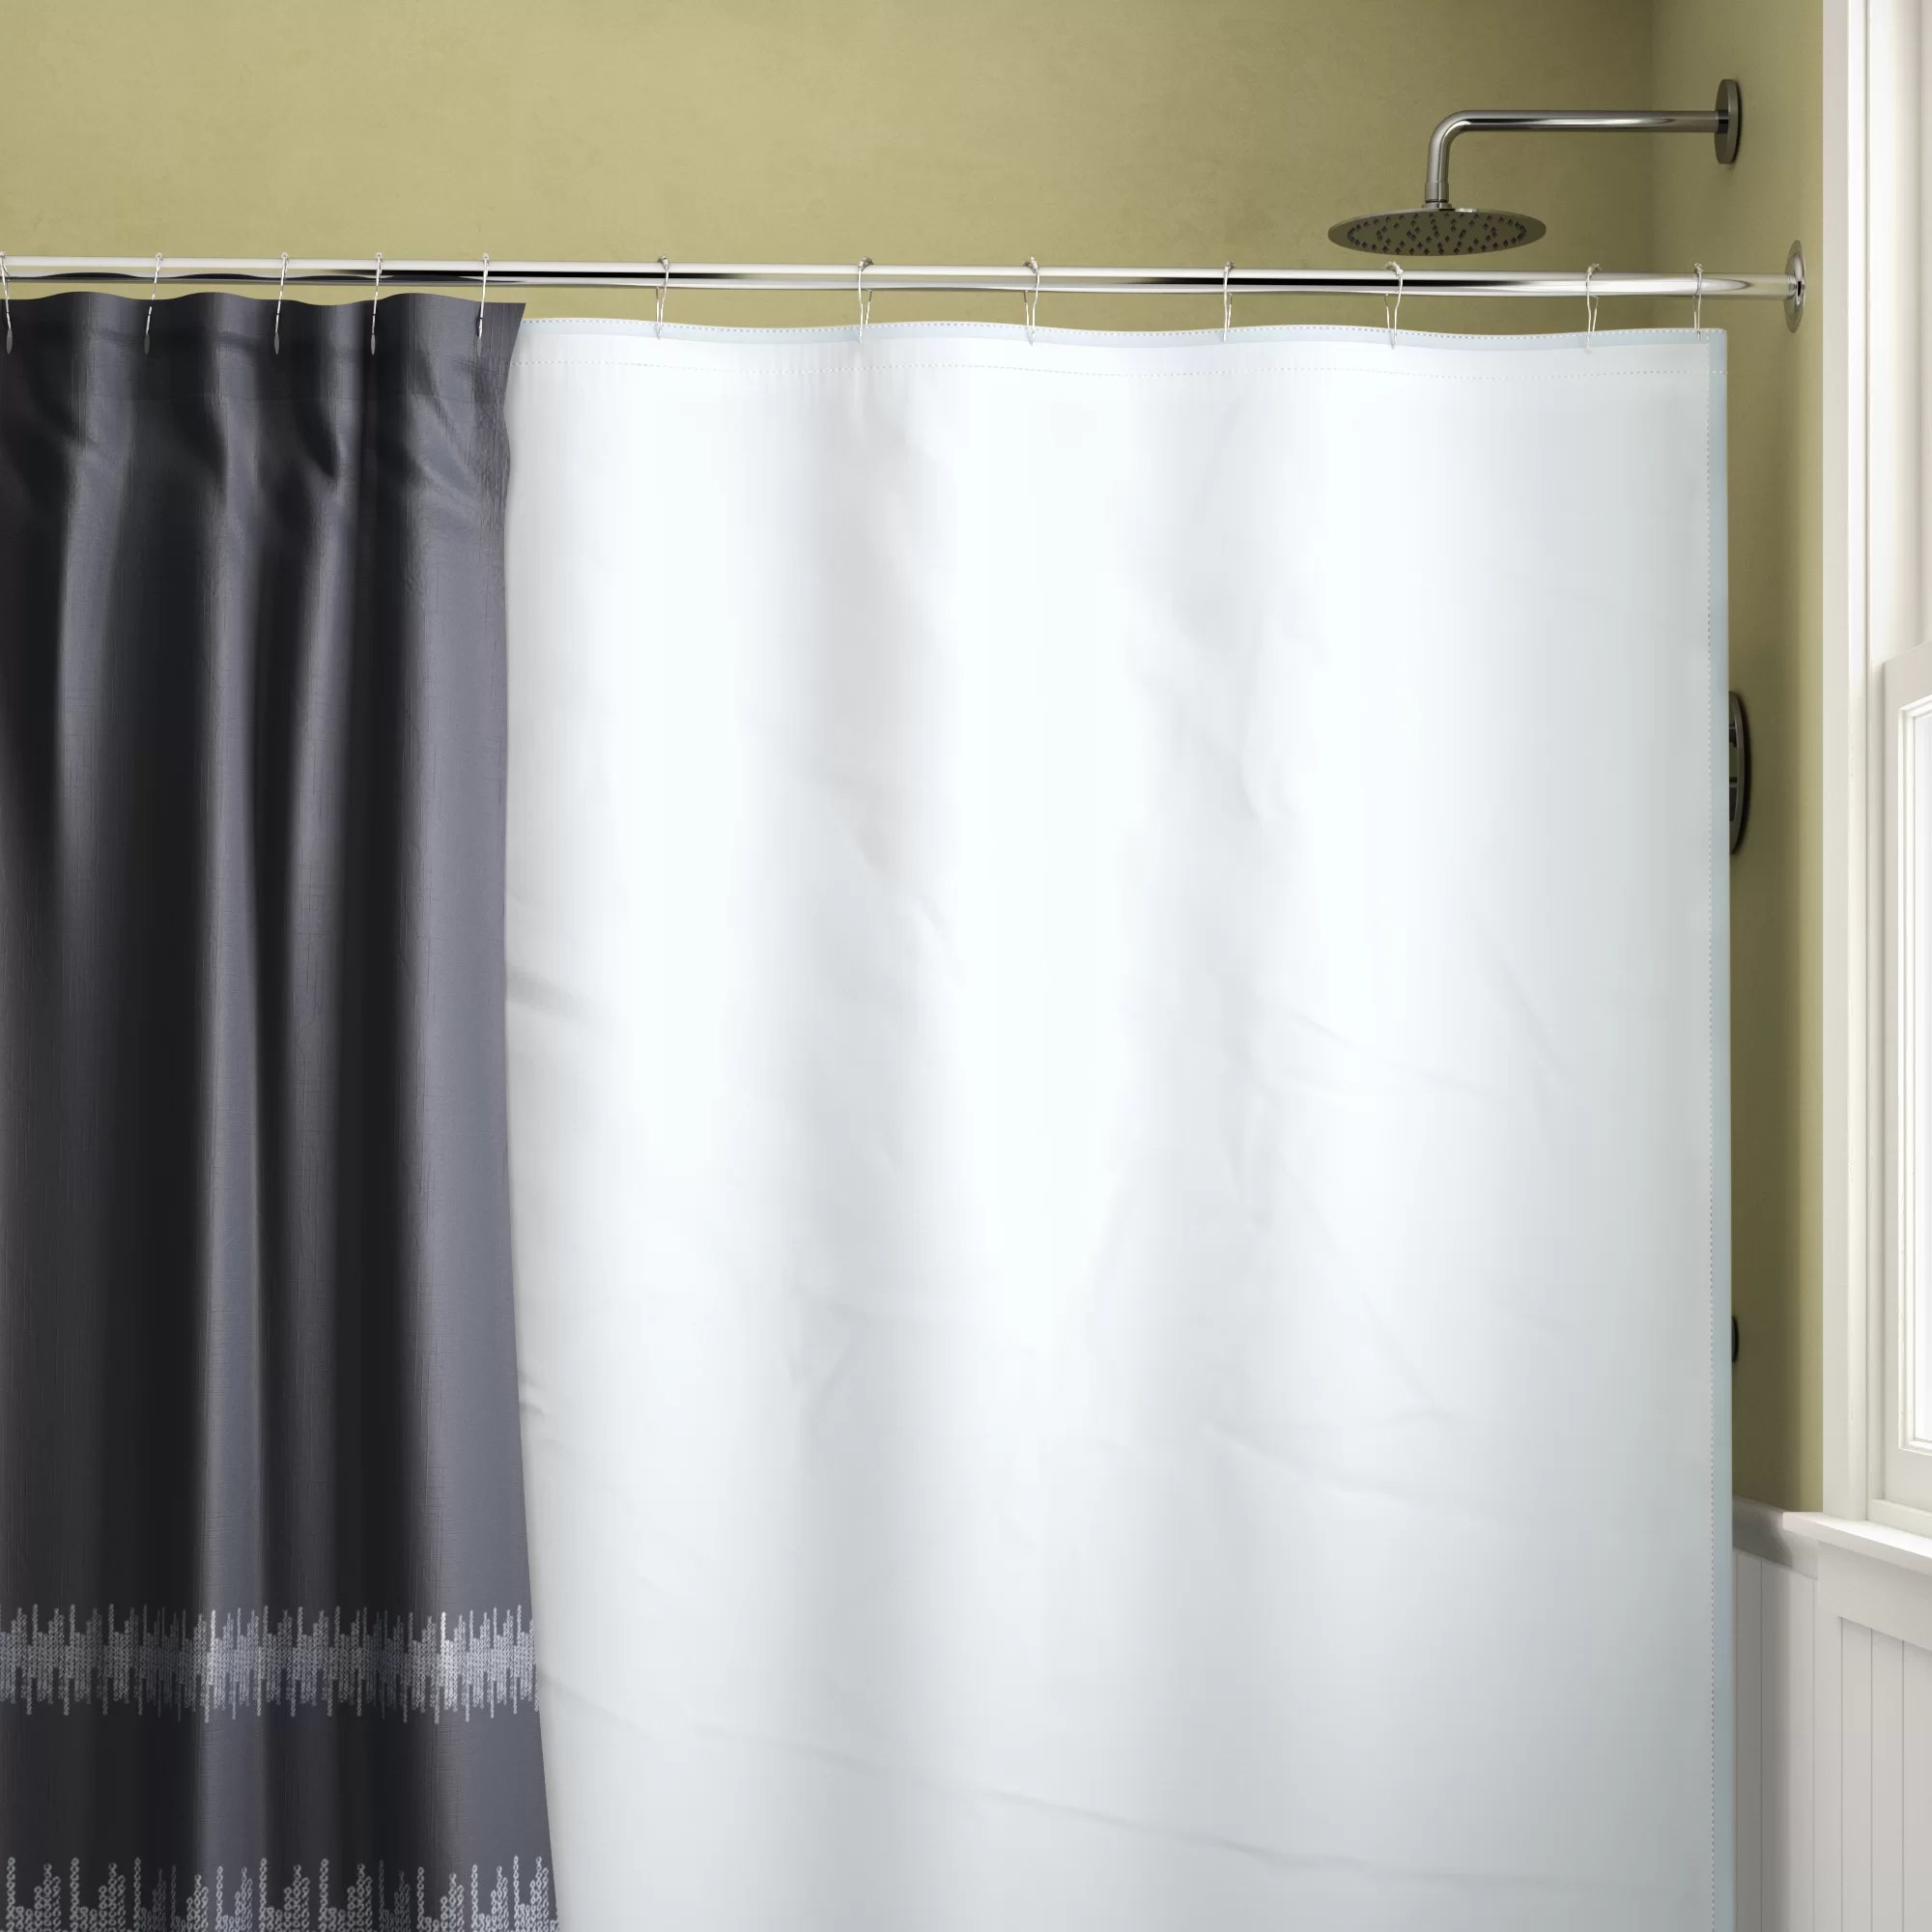 Shower Curtains Sale Waterproof Single Shower Curtain Liner